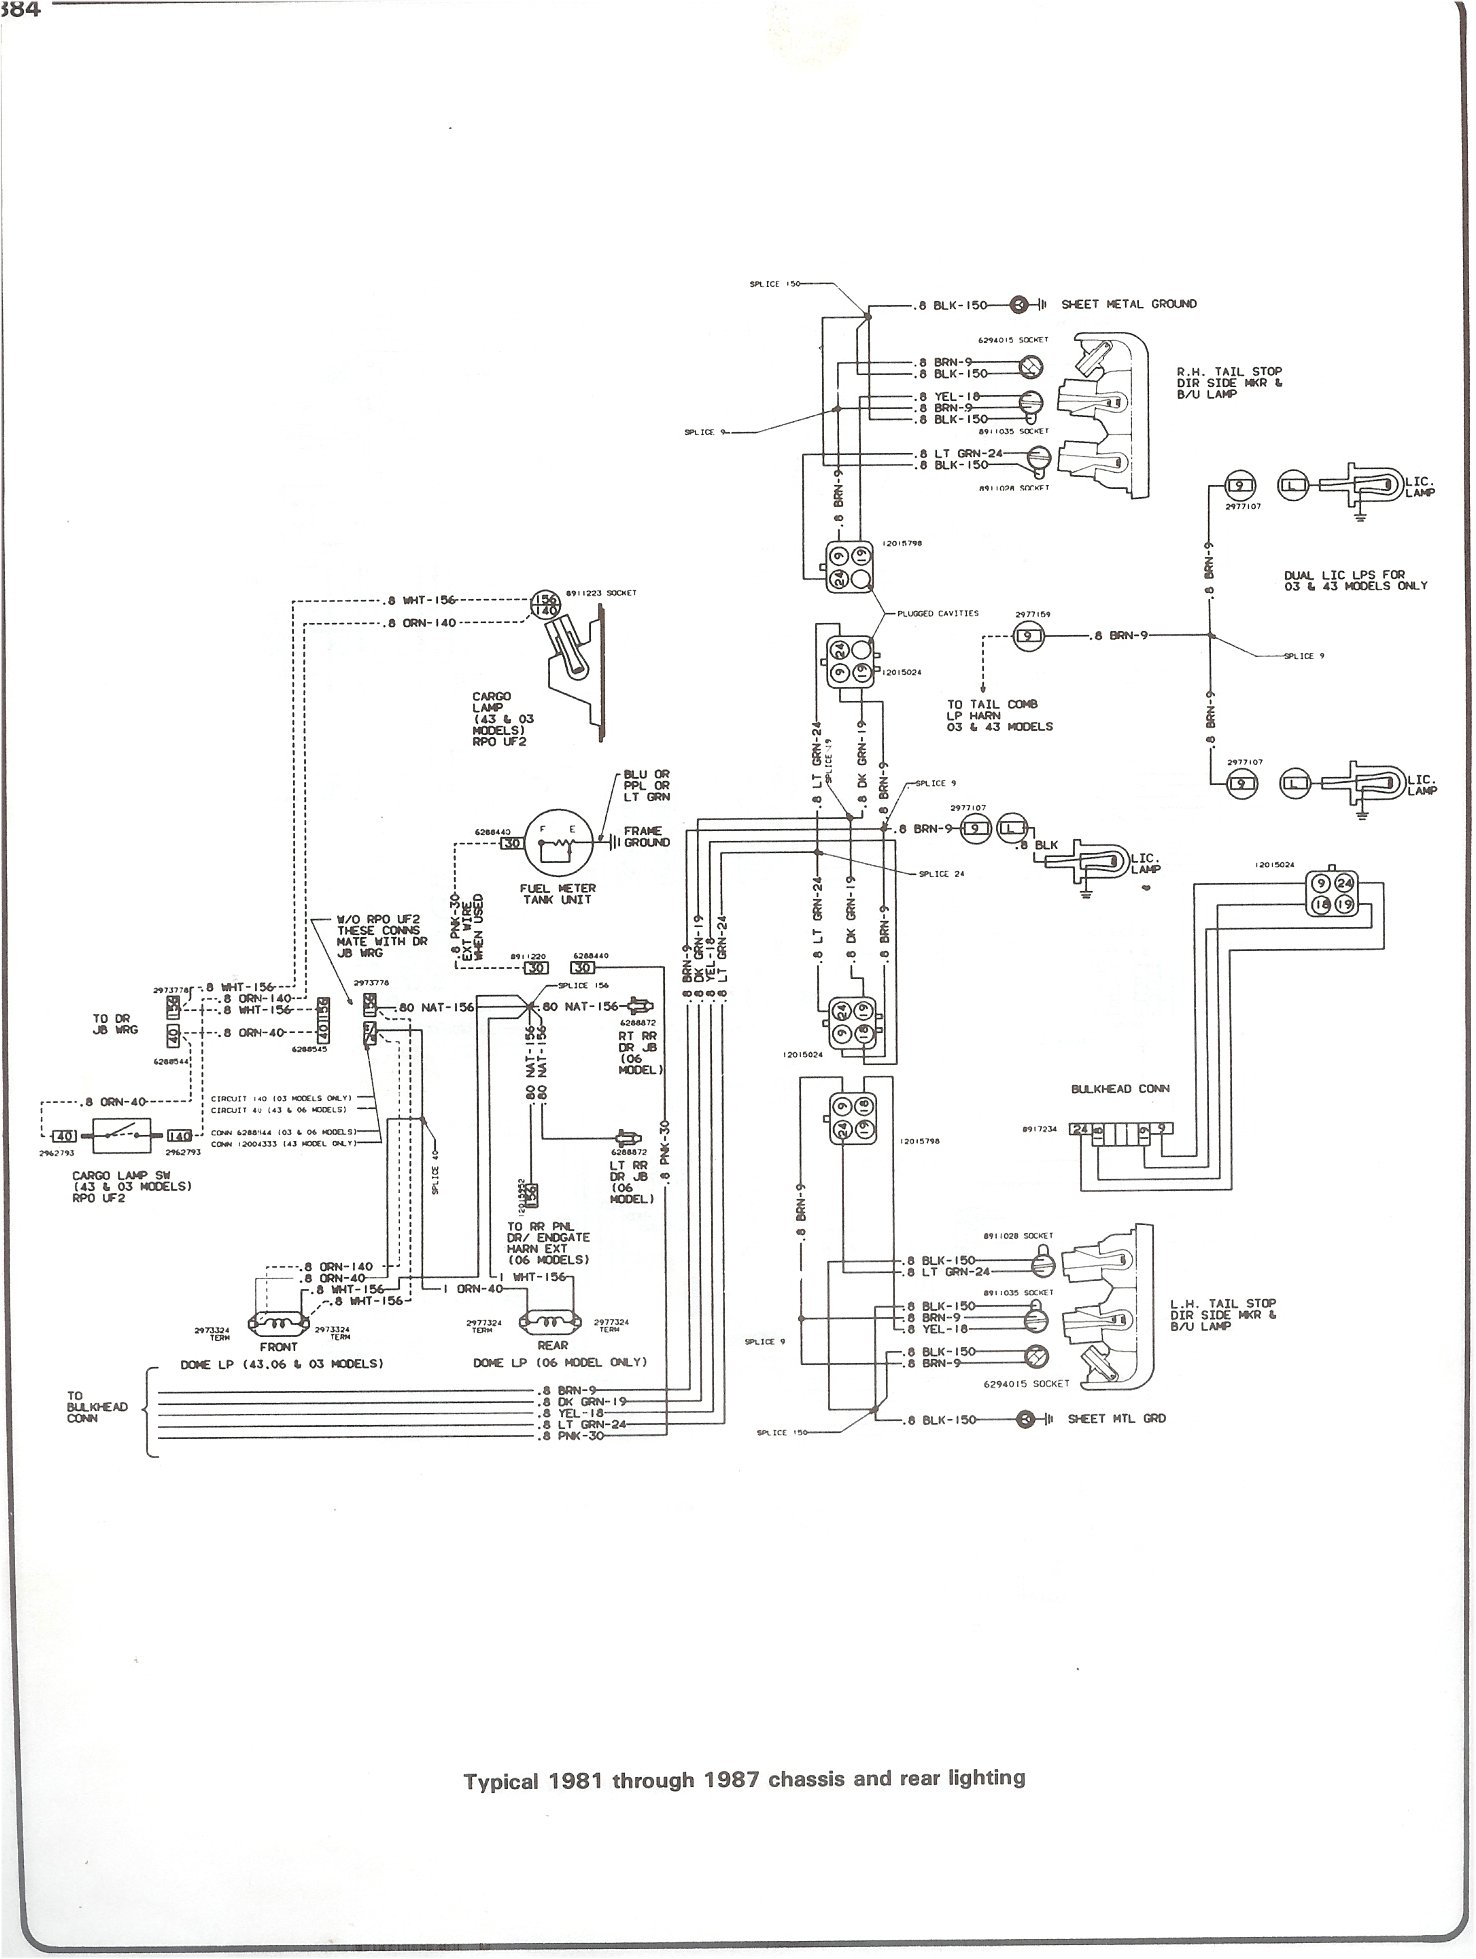 81 87_chass_rr_light complete 73 87 wiring diagrams chevy wiring diagrams at n-0.co